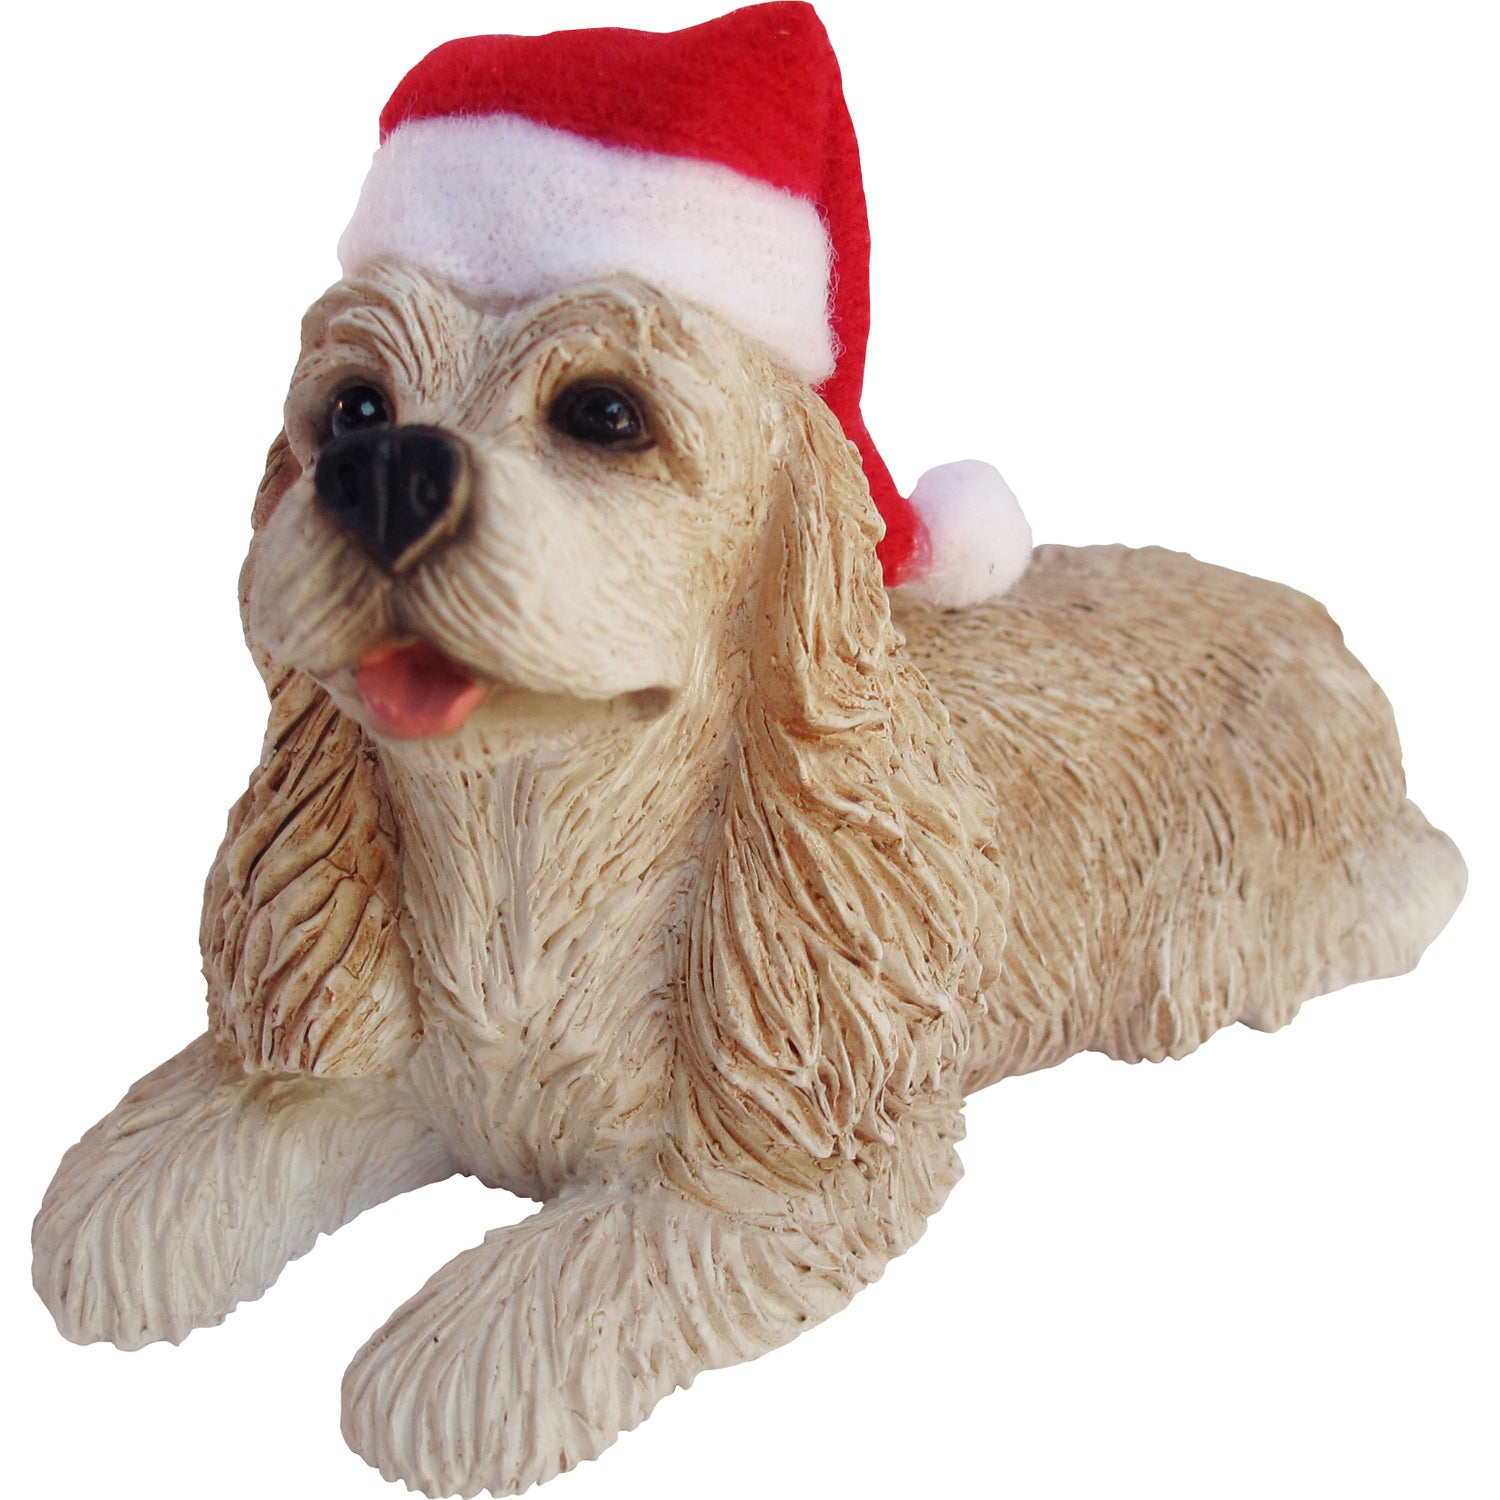 Sandicast Lying Buff Cocker Spaniel w/ Santa's Hat Christmas Dog Ornament